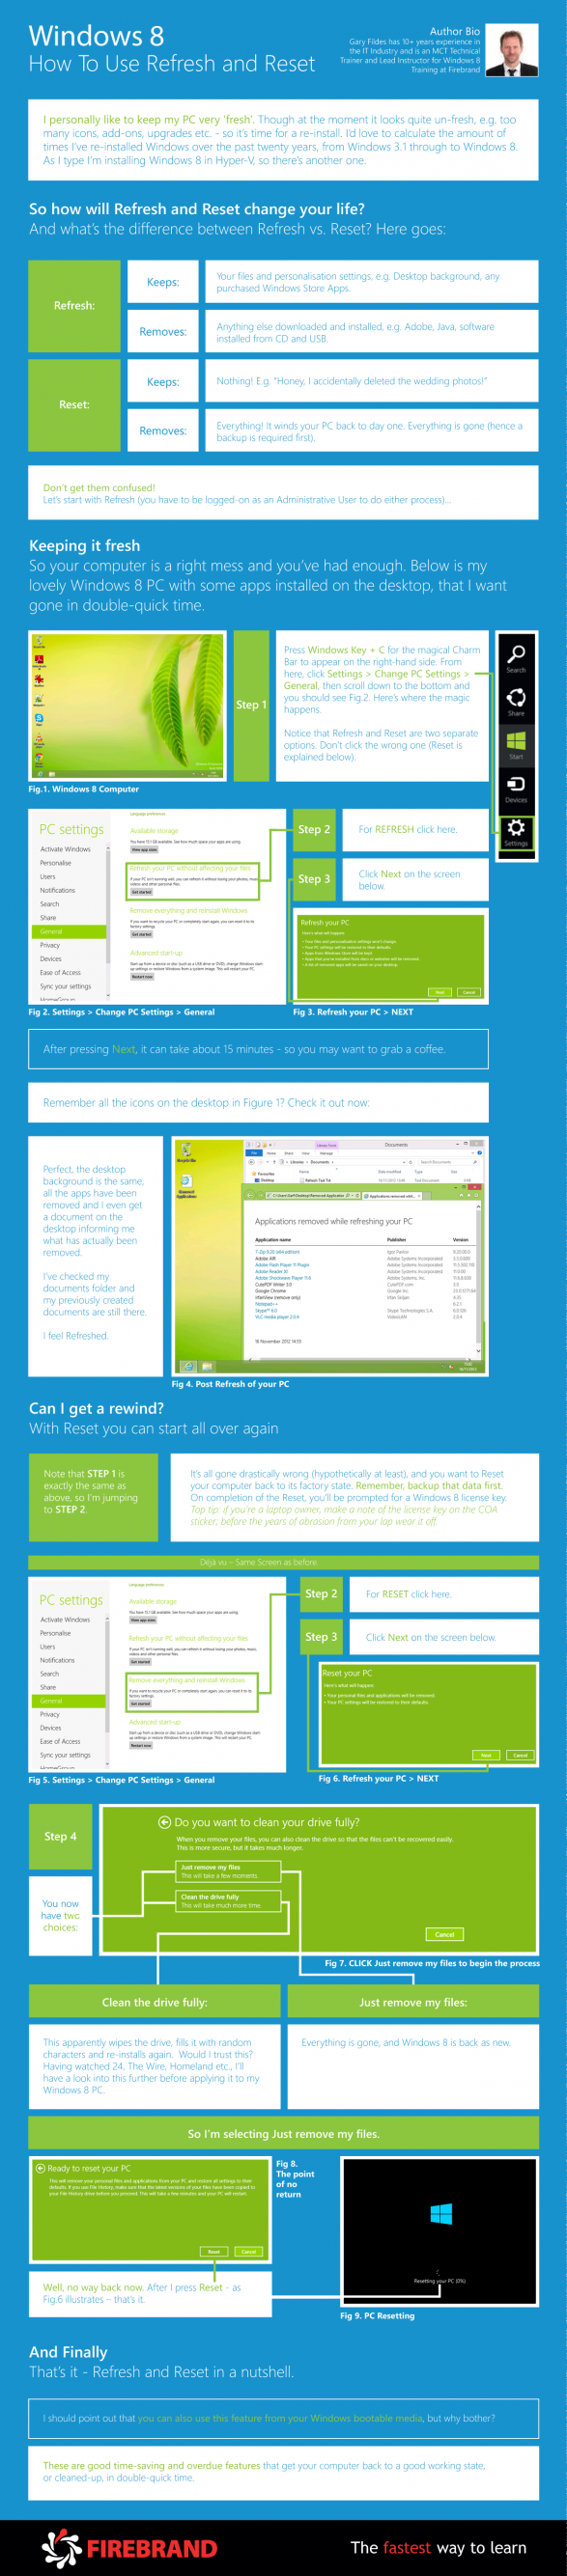 How to - Windows 8 Refresh and Reset